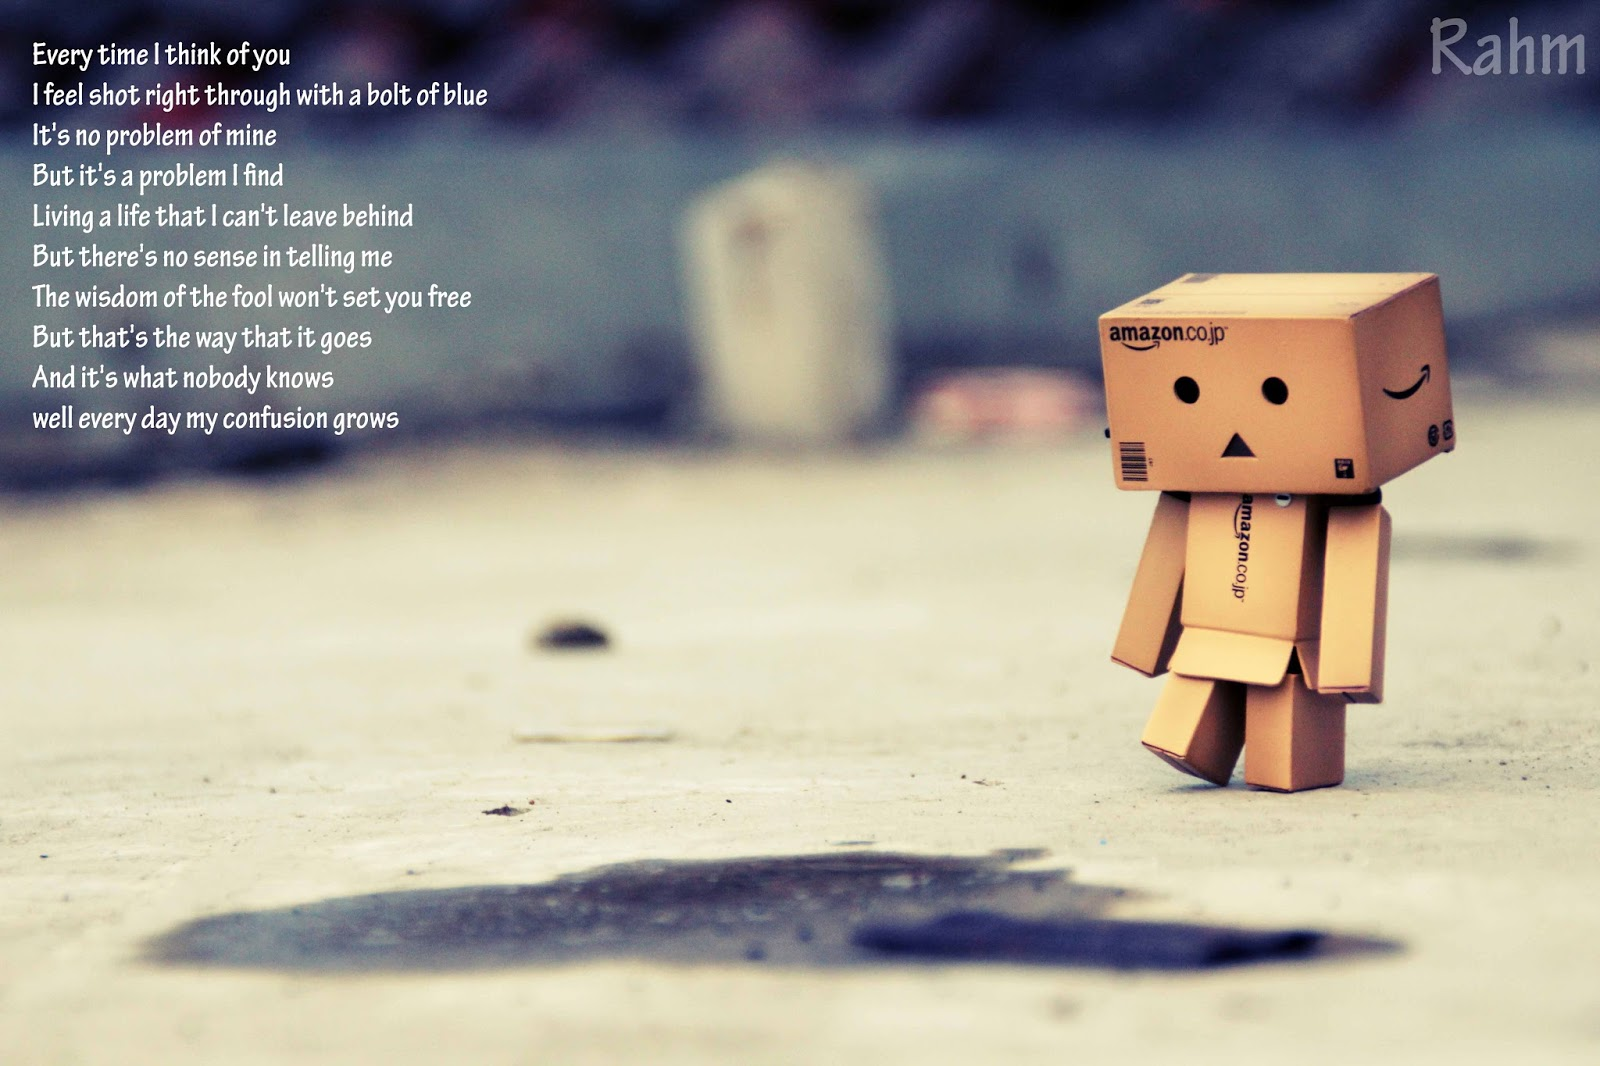 Foto Gambar Boneka Danbo Galau 9 out of 10 based on 10 ratings. 9 user